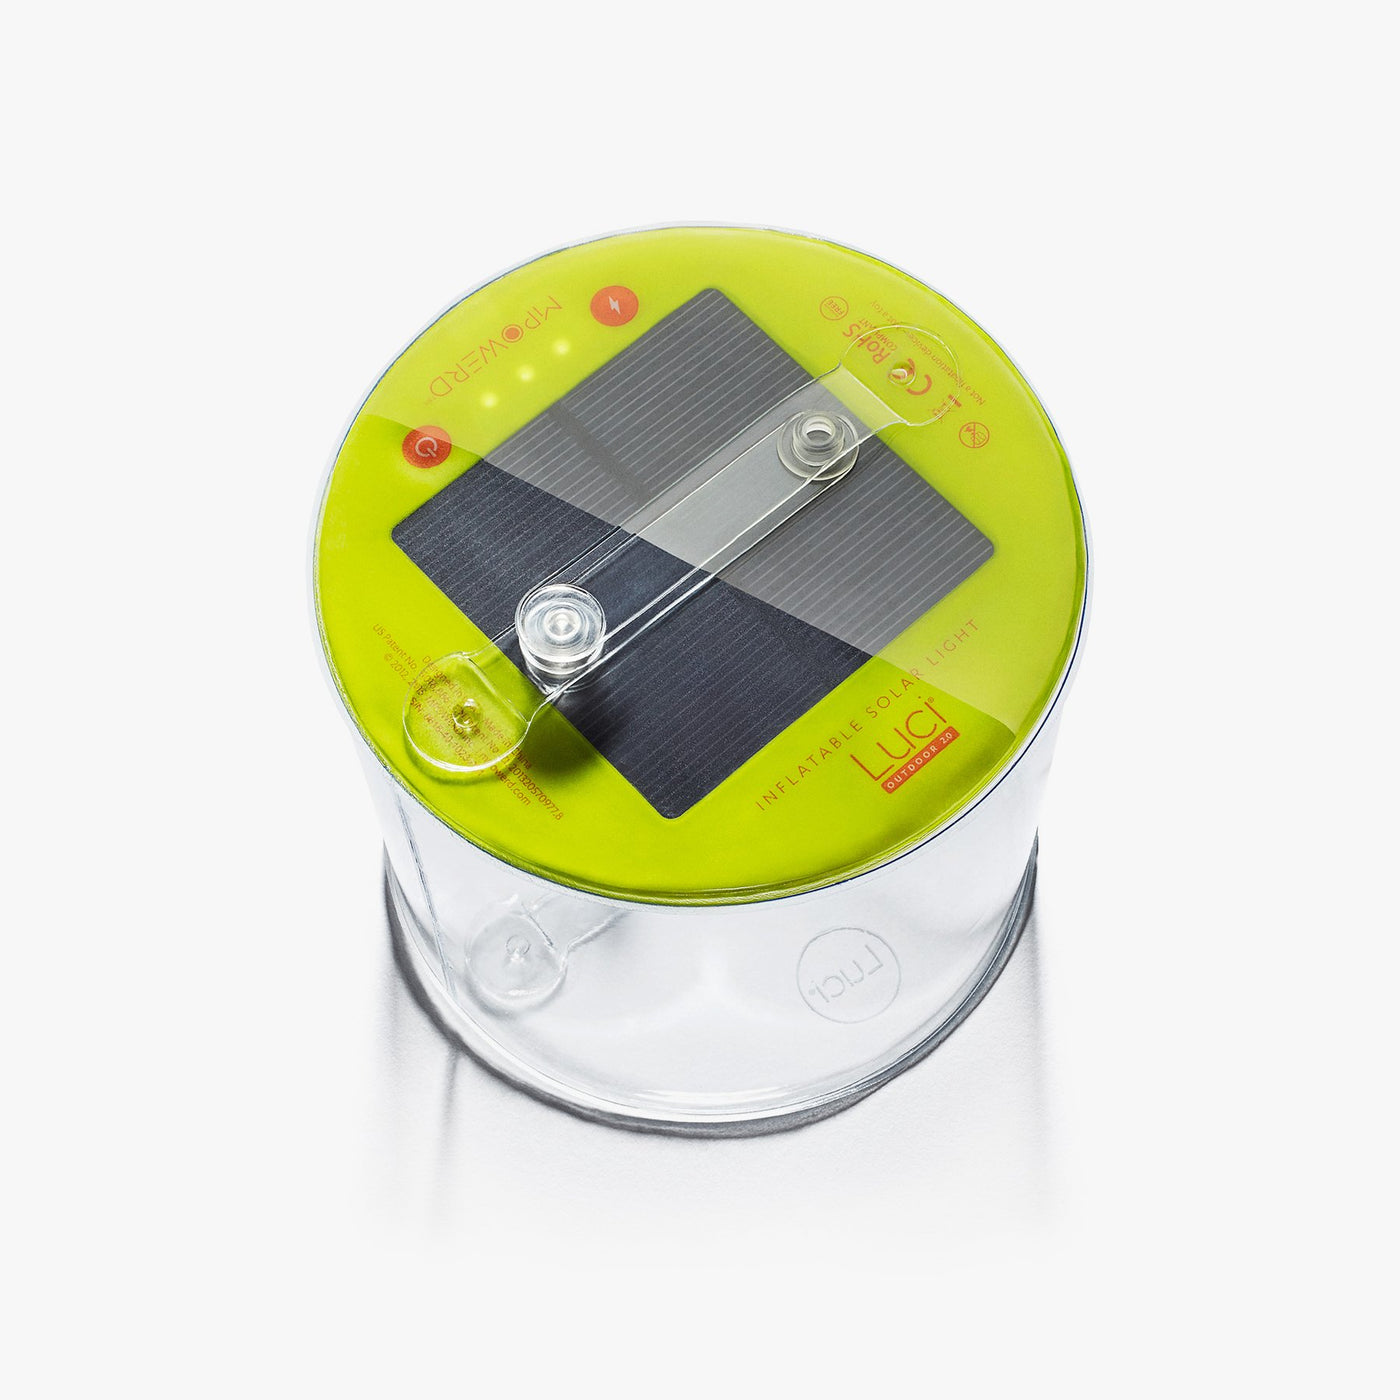 Luci Outdoor 2.0 - Inflatable Solar Light